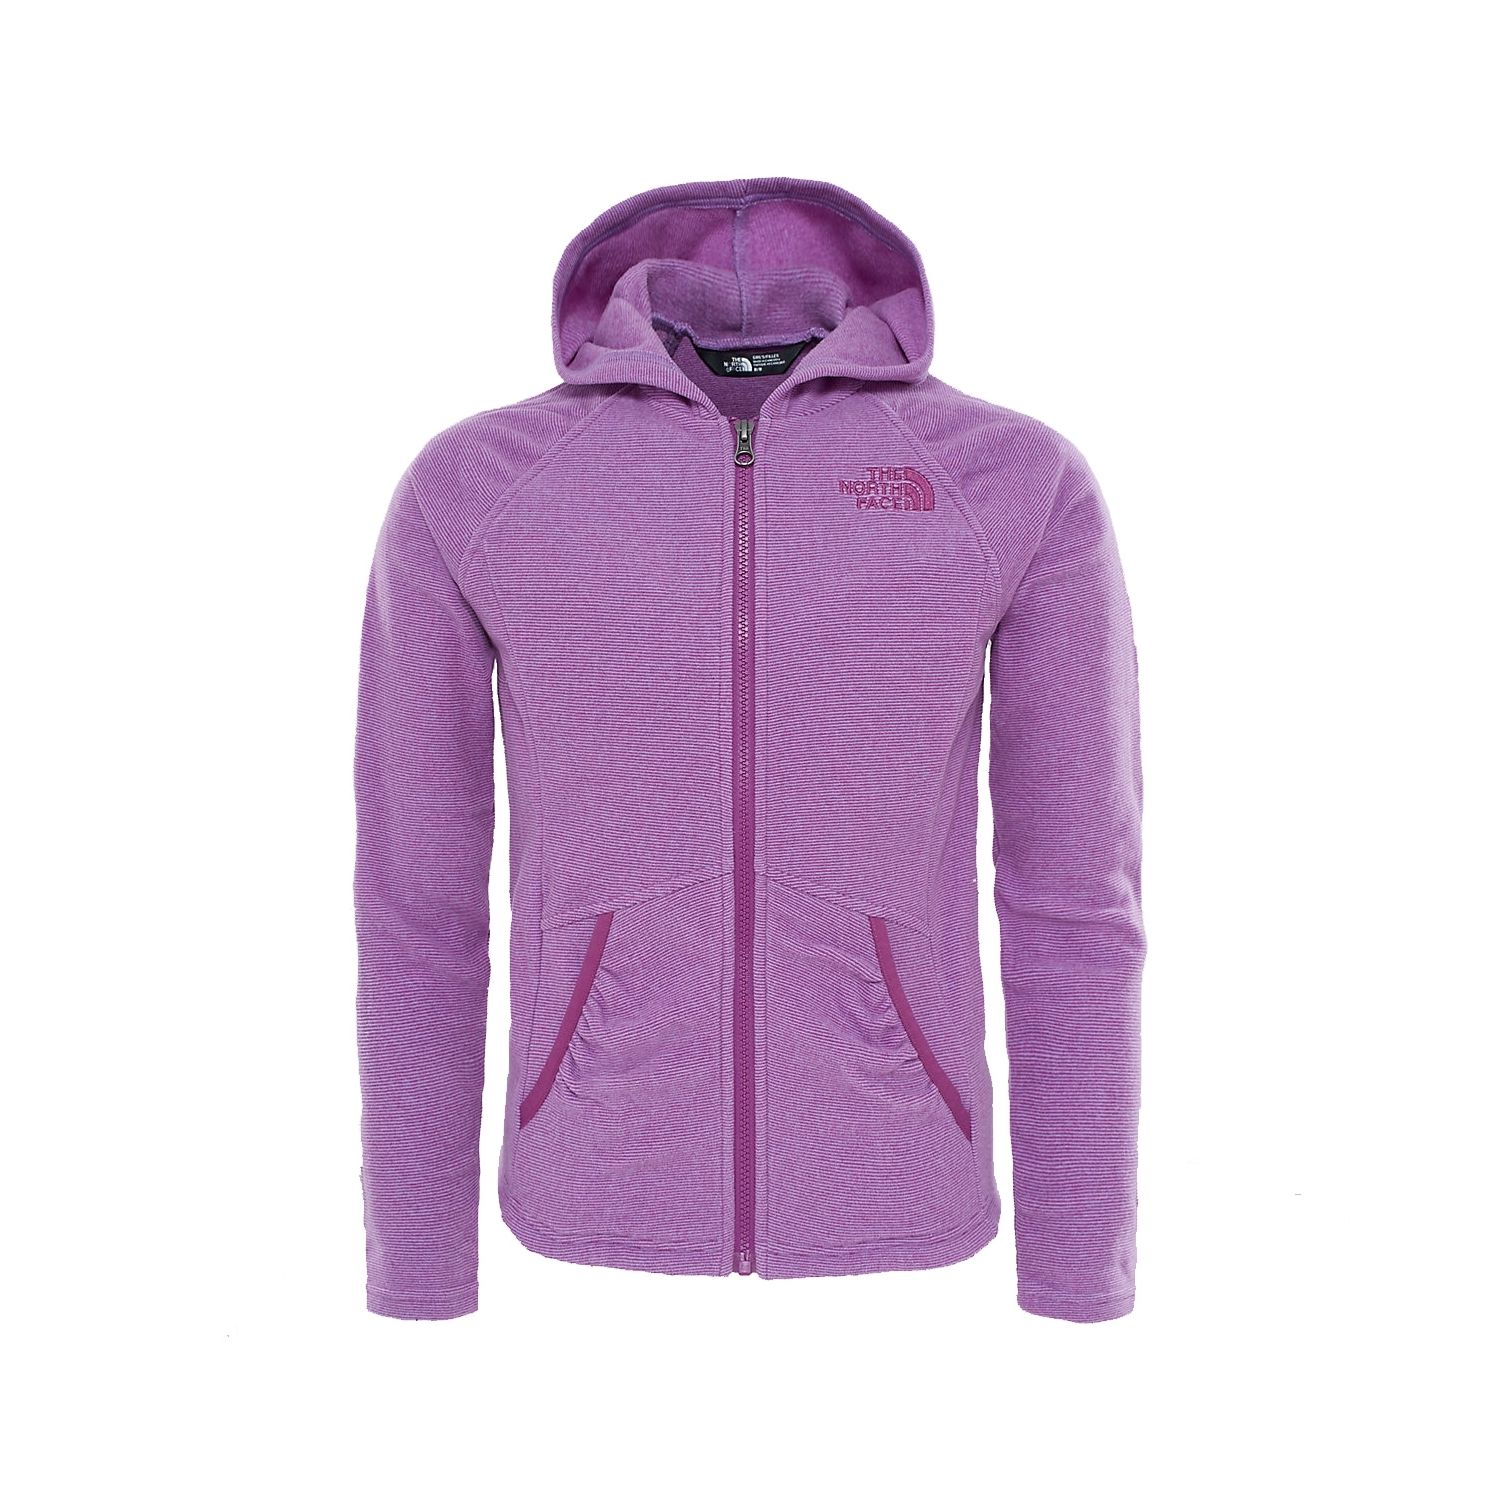 THE NORTH FACE- Sweat Capuche Mezzaluna Bellflower - Violet - NC